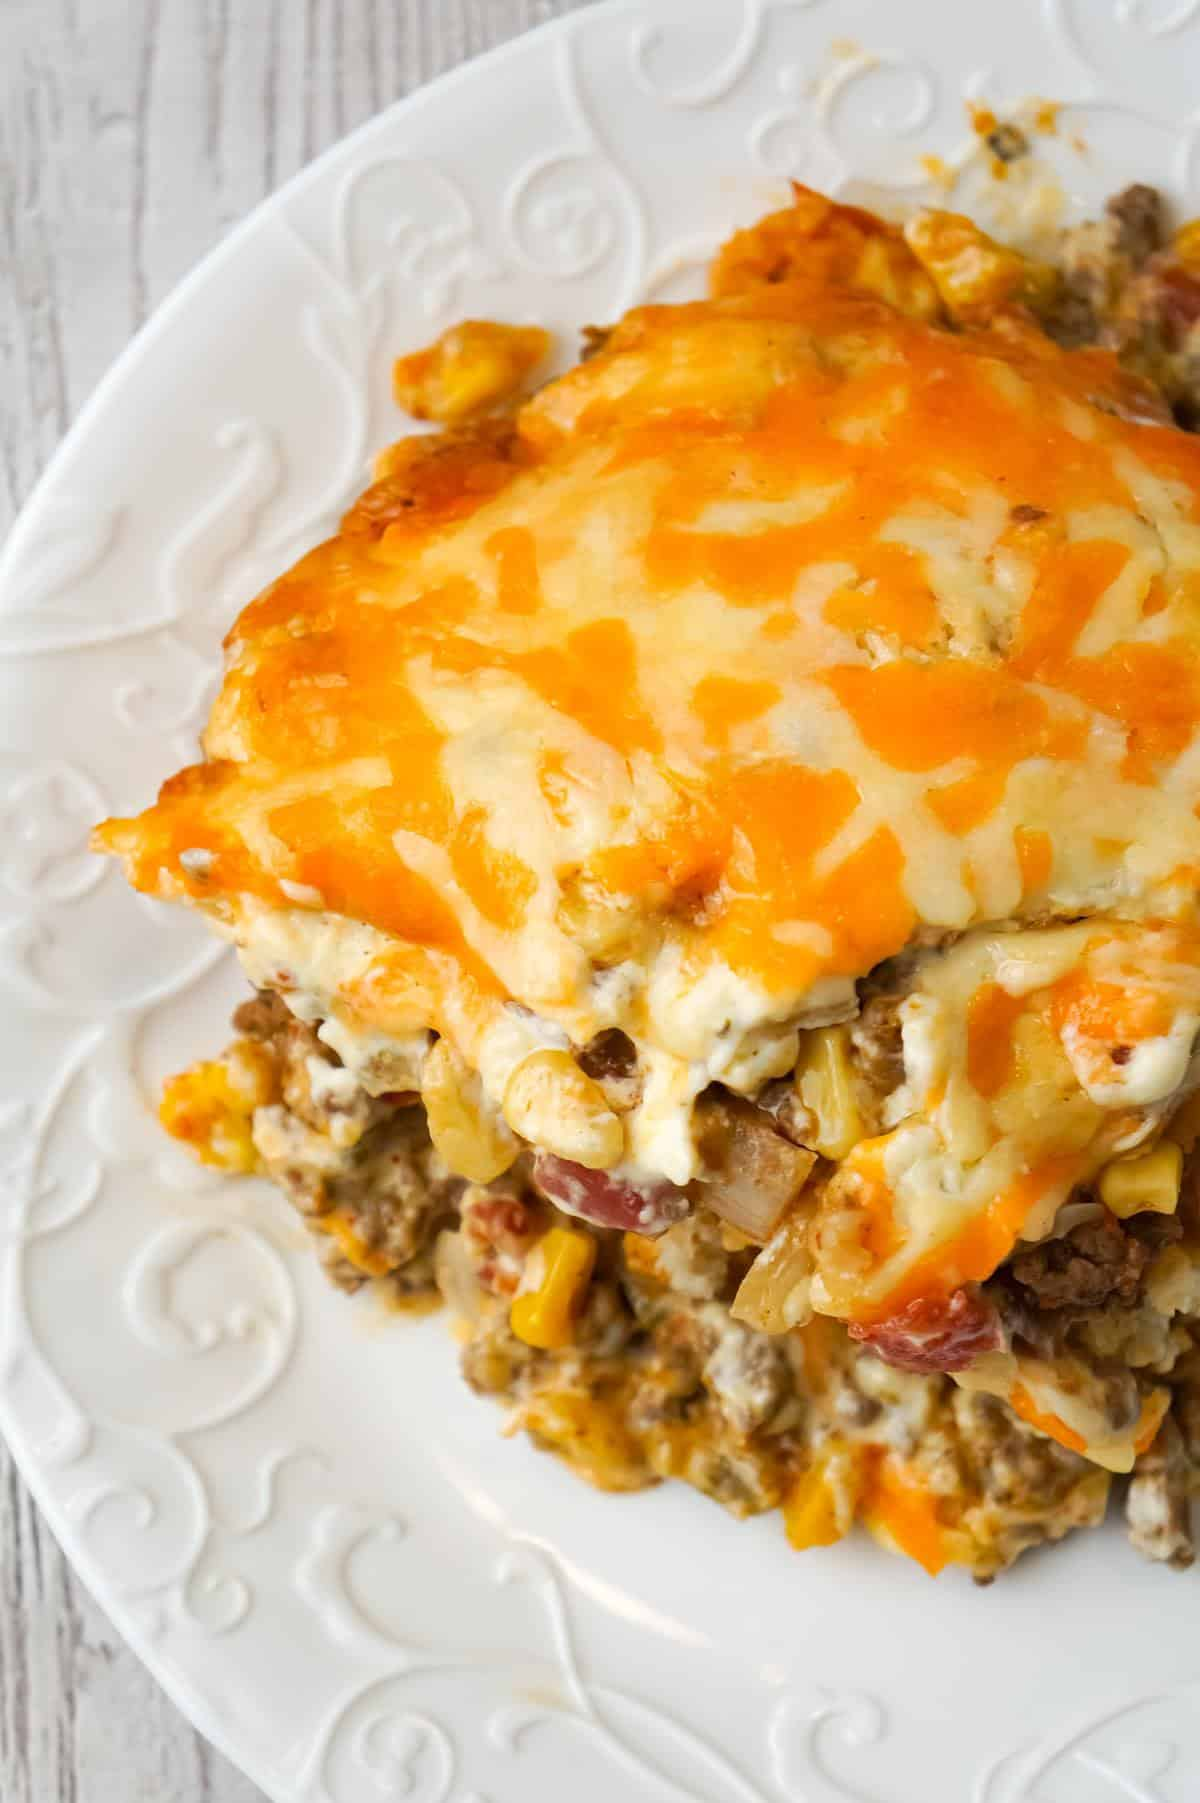 John Wayne Casserole is an easy ground beef casserole recipe with a biscuit base and loaded with diced tomatoes, corn, taco seasoning, cream cheese, mozzarella and cheddar.